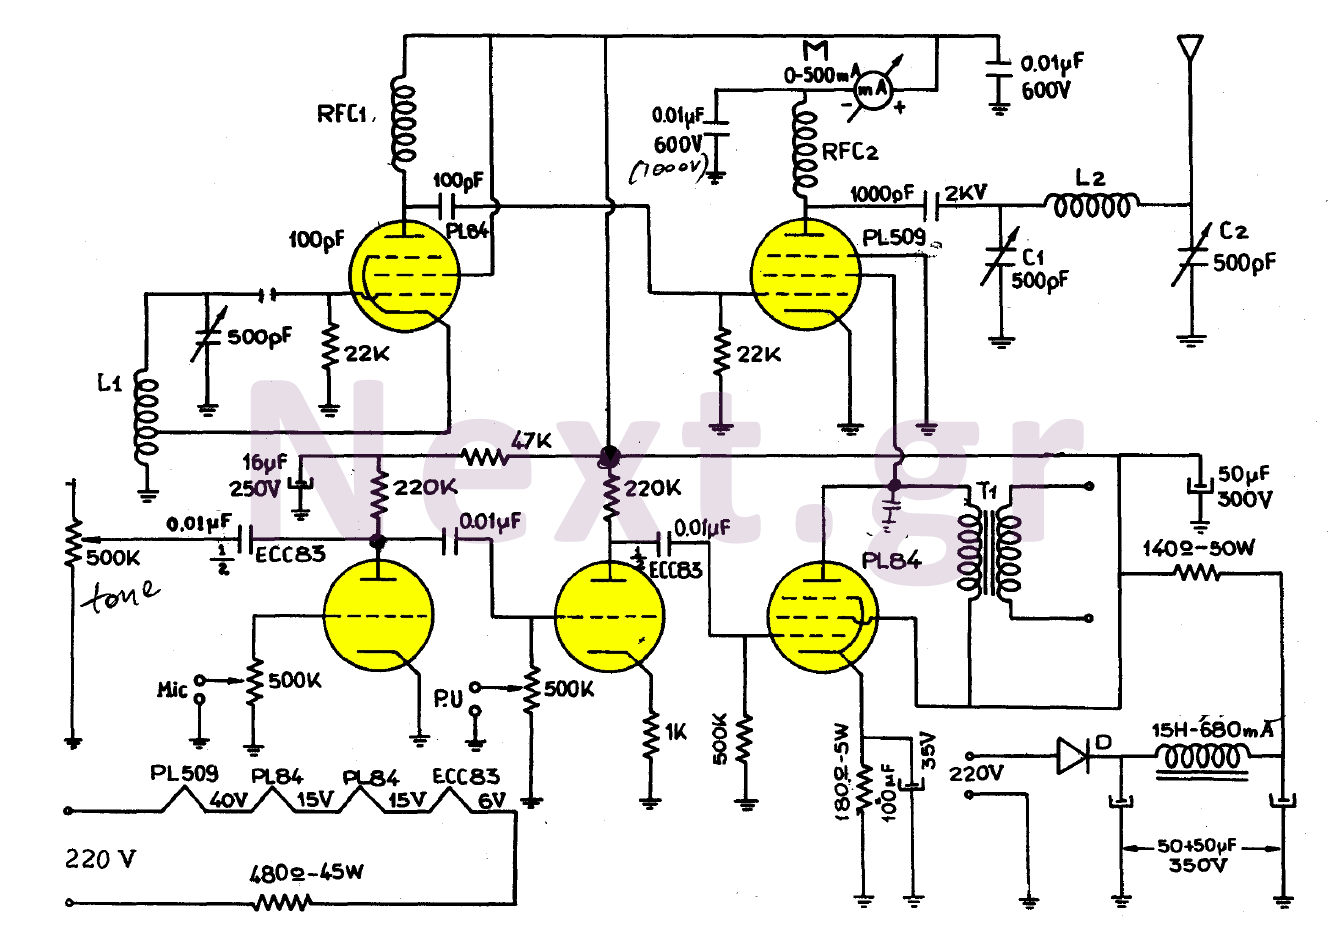 Simple Valve MW Transmitter circuit 30W - schematic